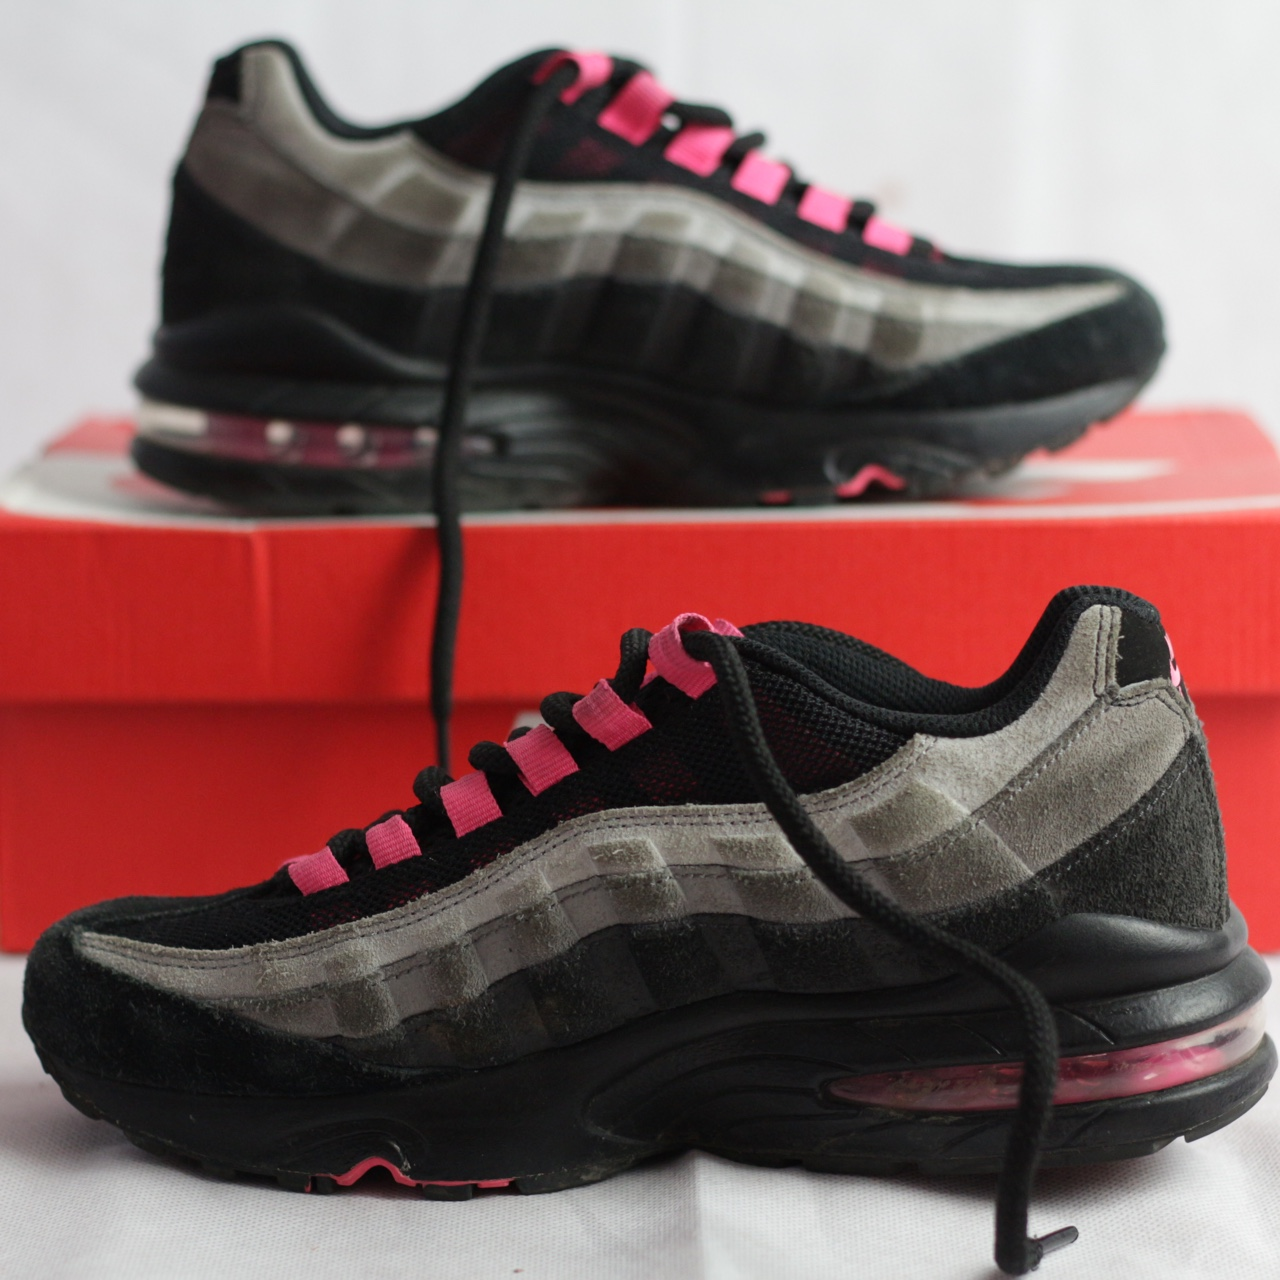 grey and pink Air Max 95 commonly known